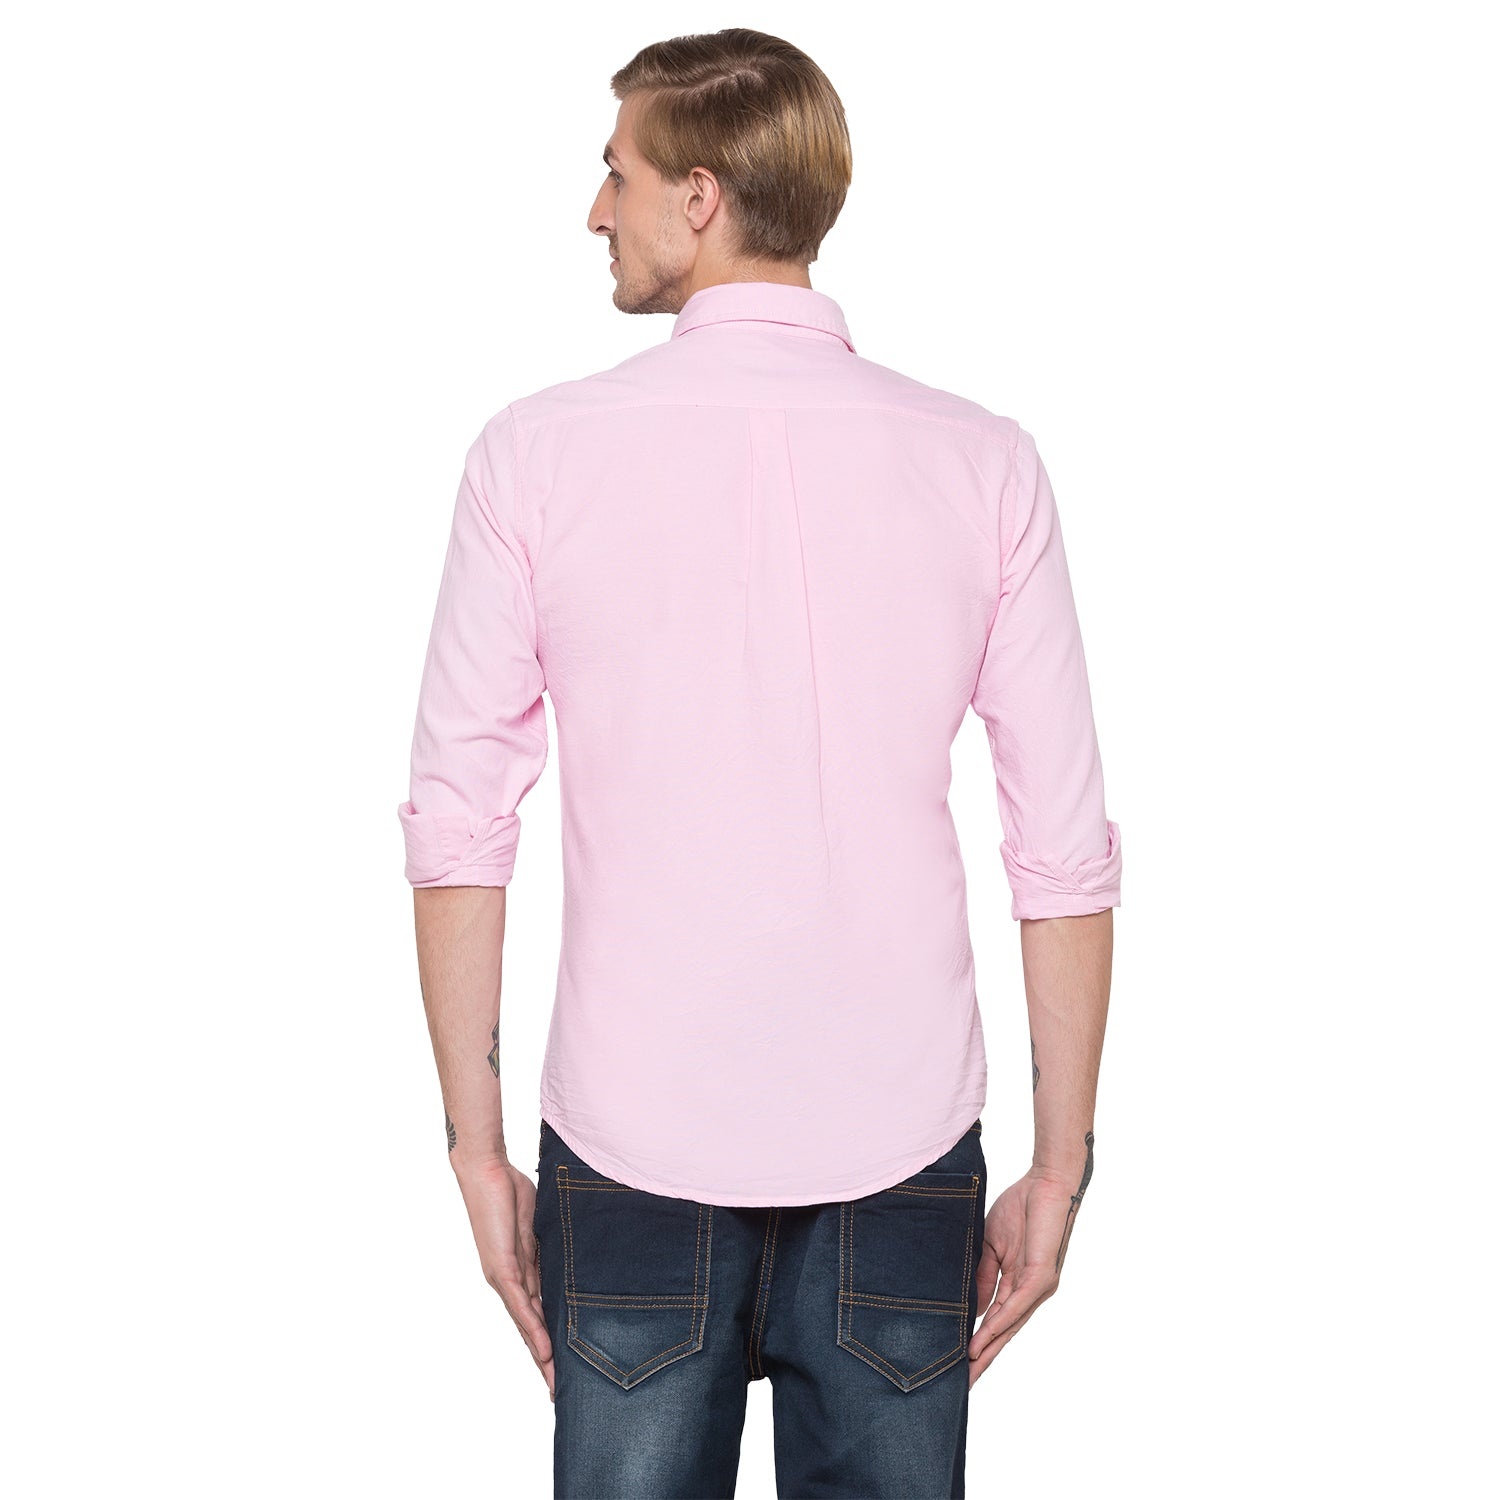 Globus Pink Solid Shirt-3